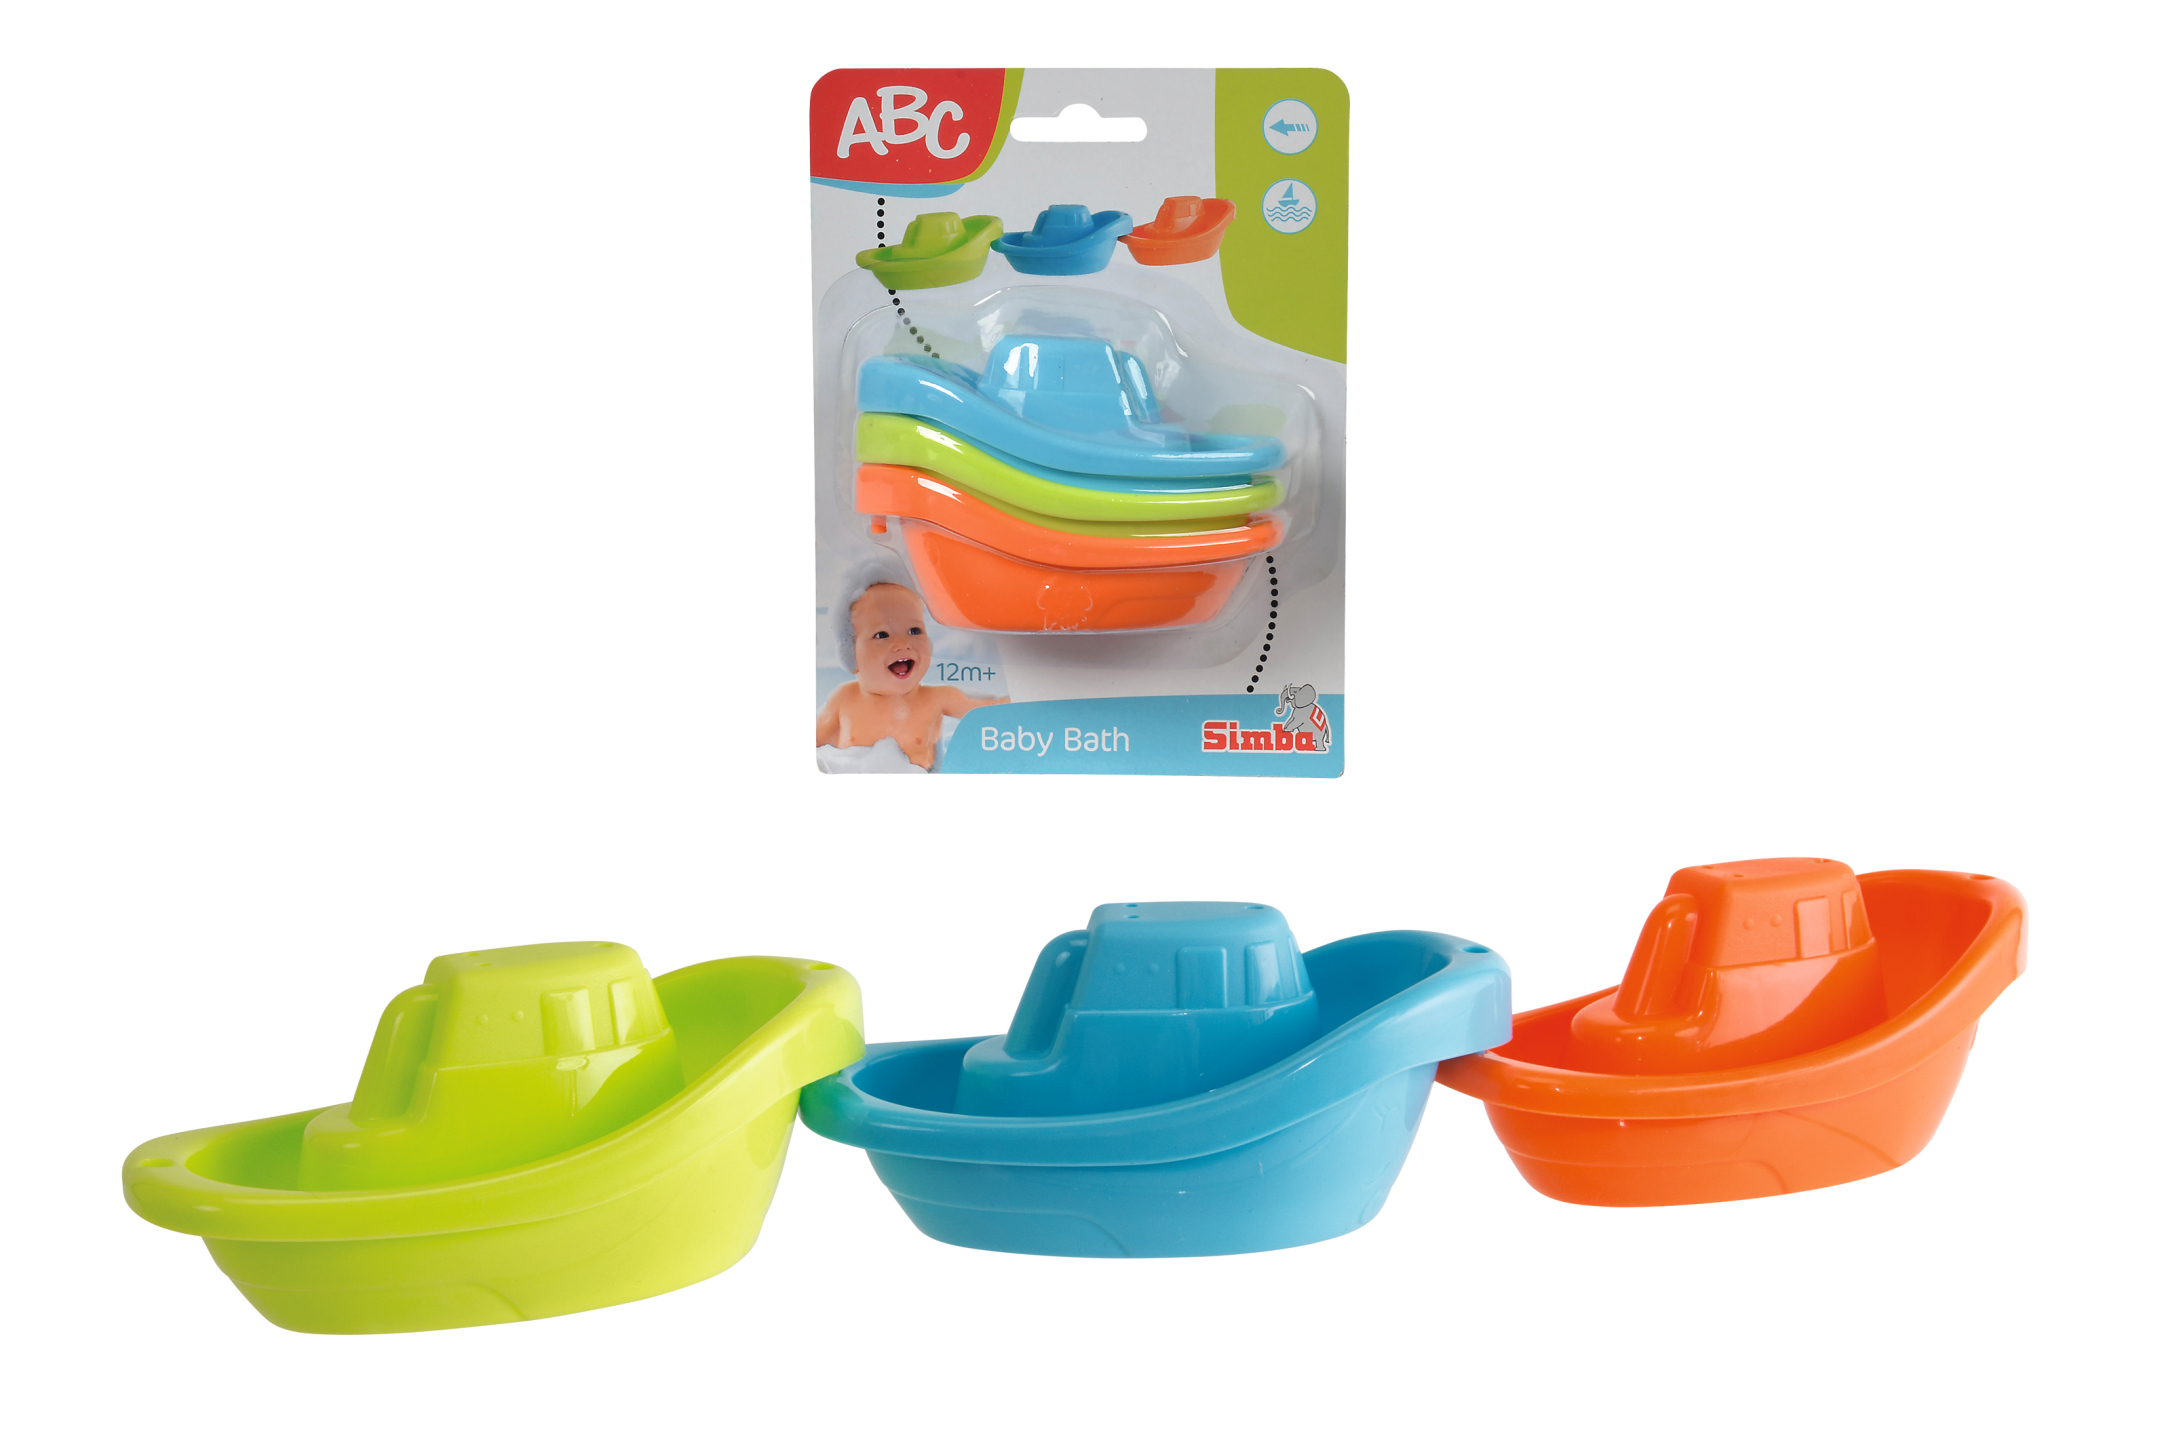 ABC Bunte Badeboote